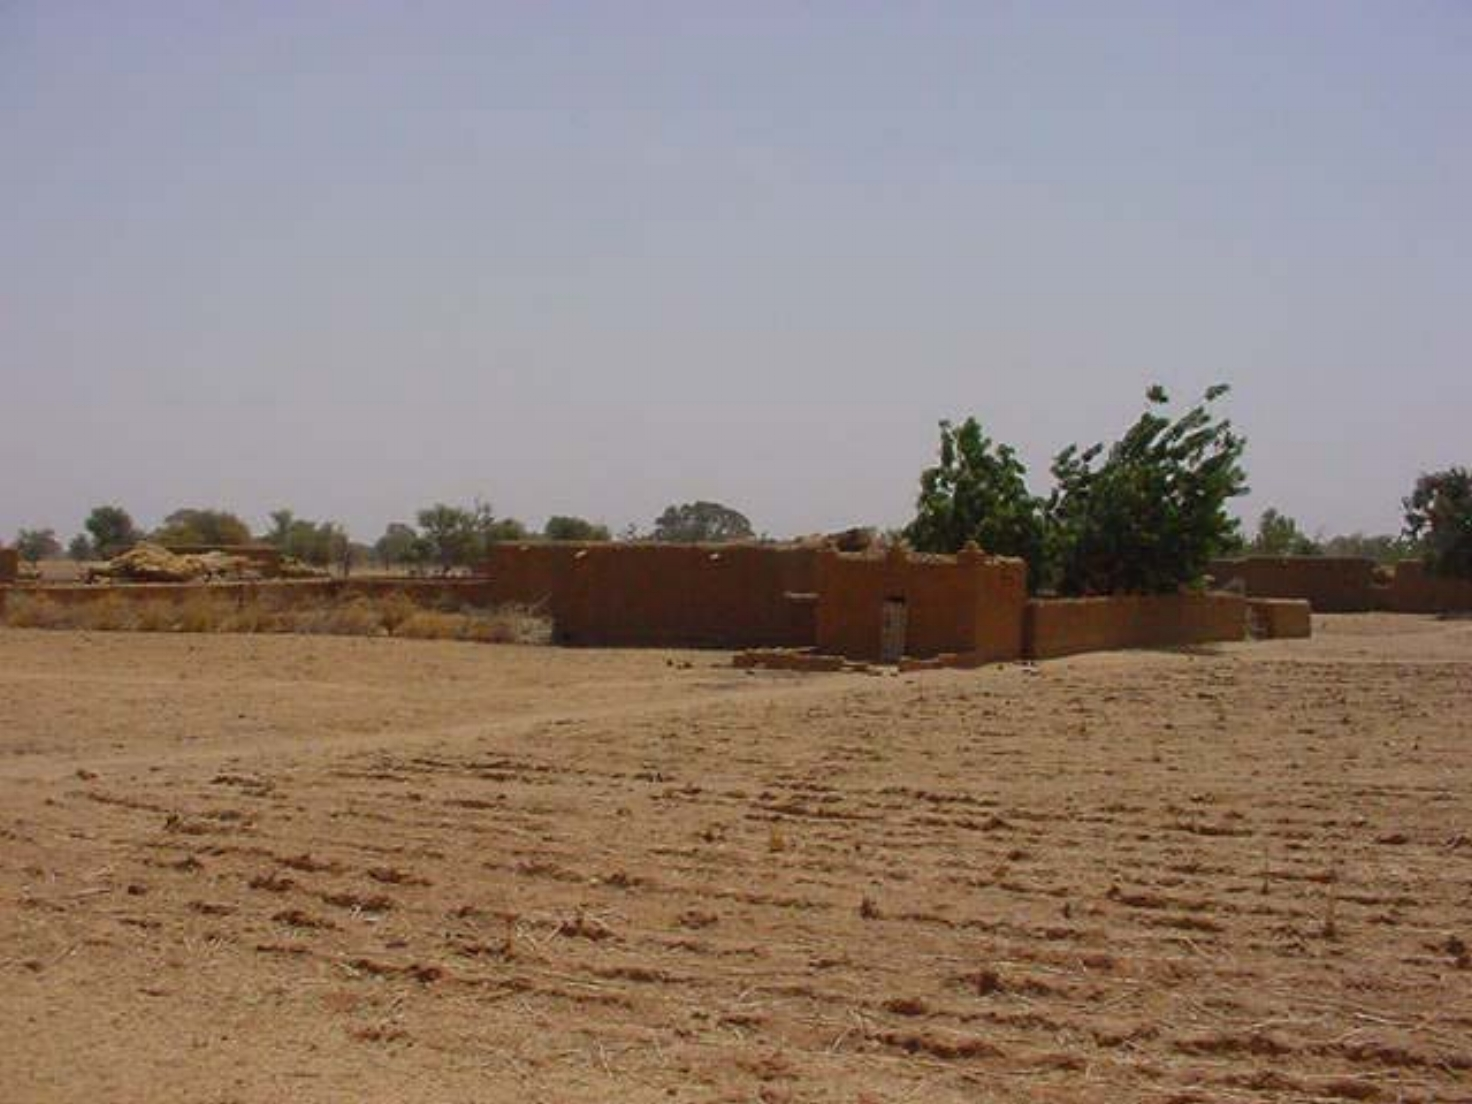 The dry fields of the Dogon Valley